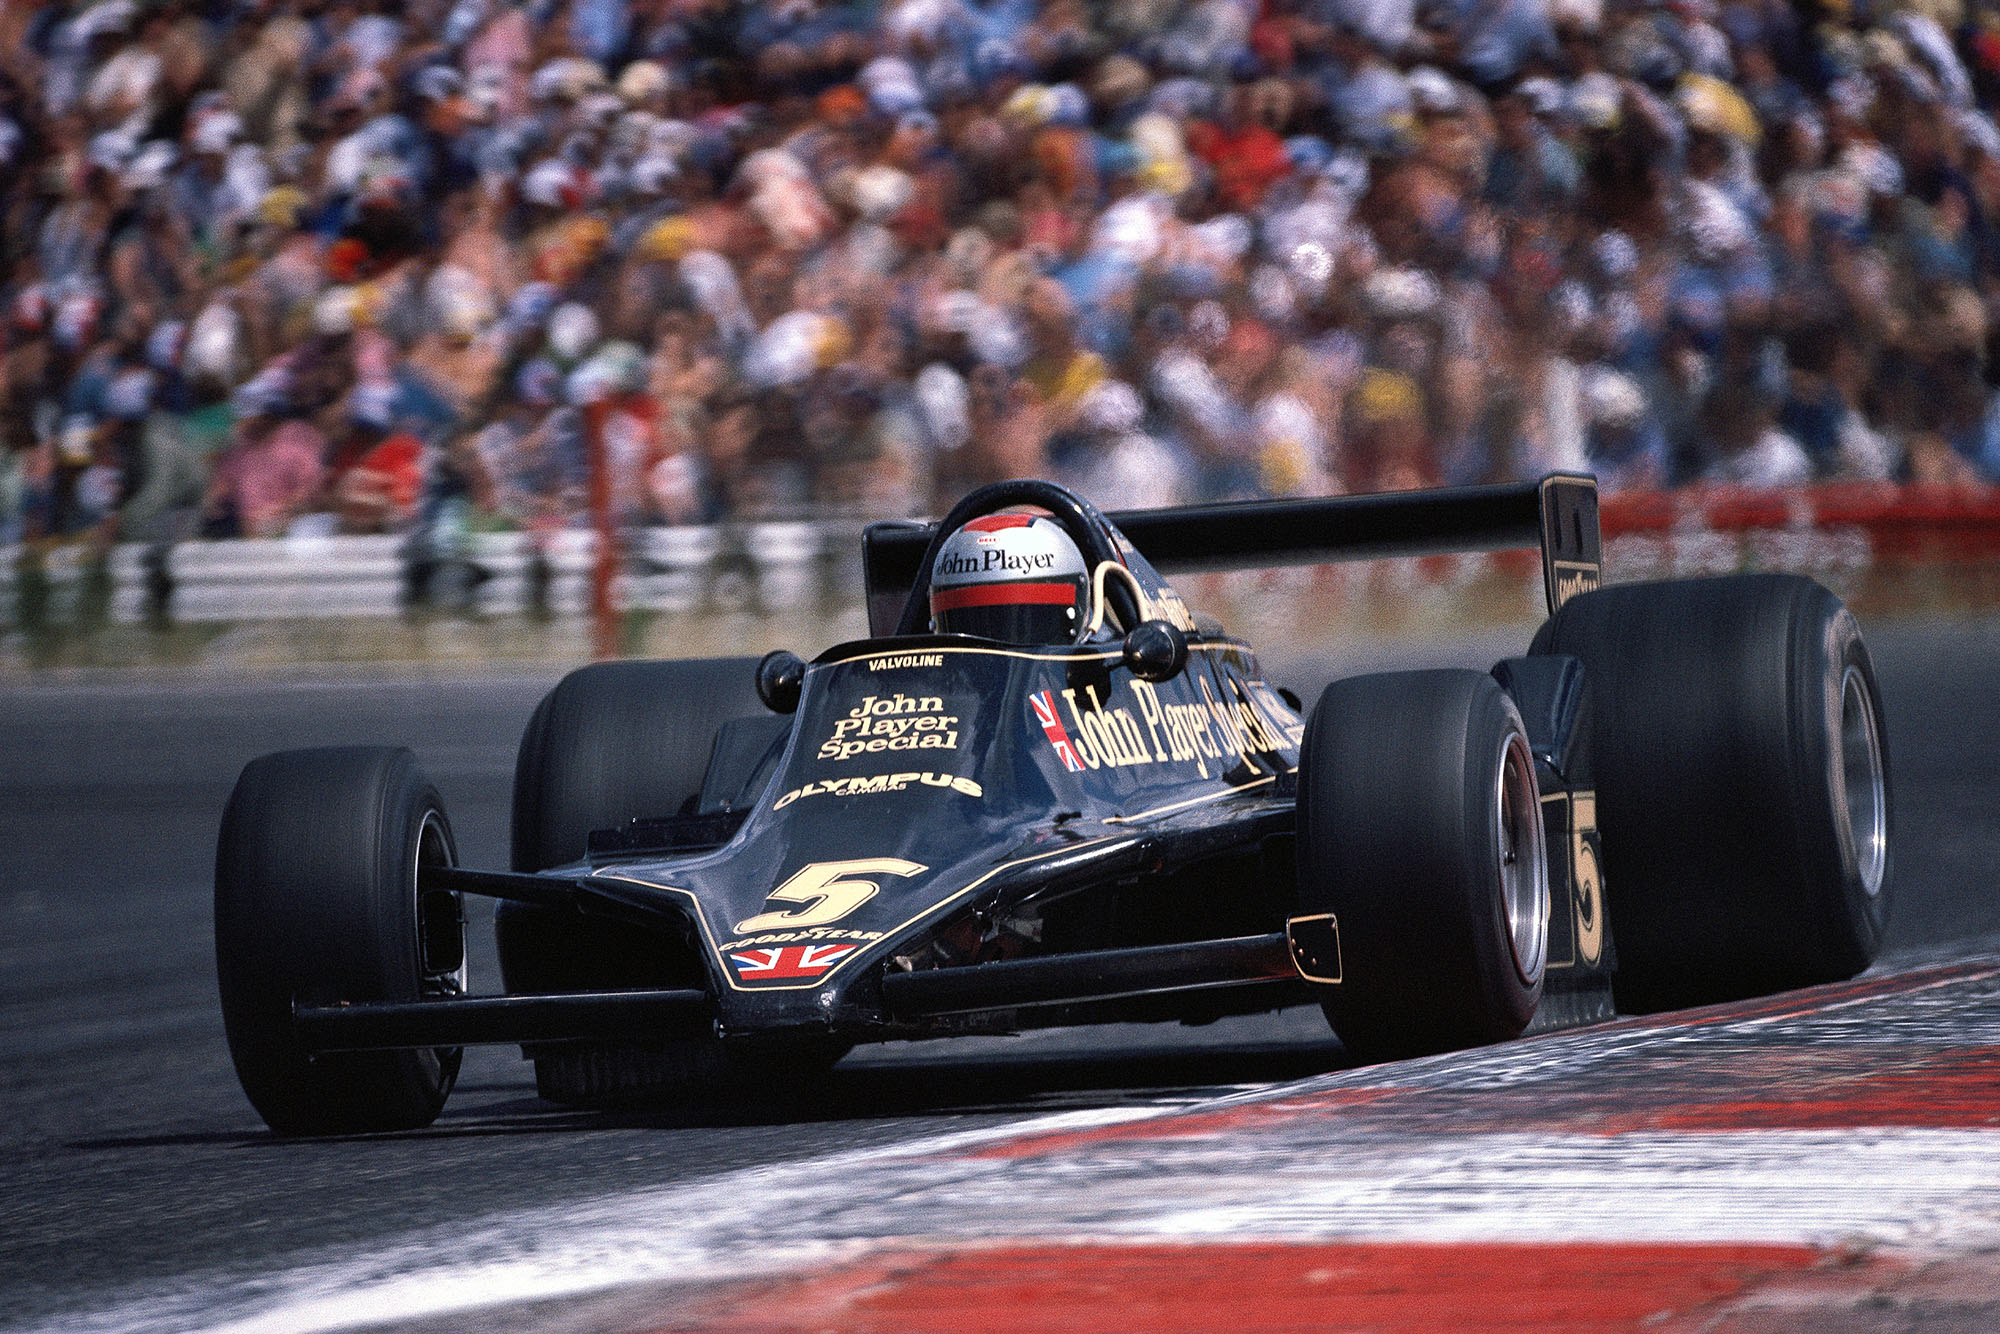 Mario Andretti (Lotus) driving at the 1978 French Grand Prix, Paul Ricard.